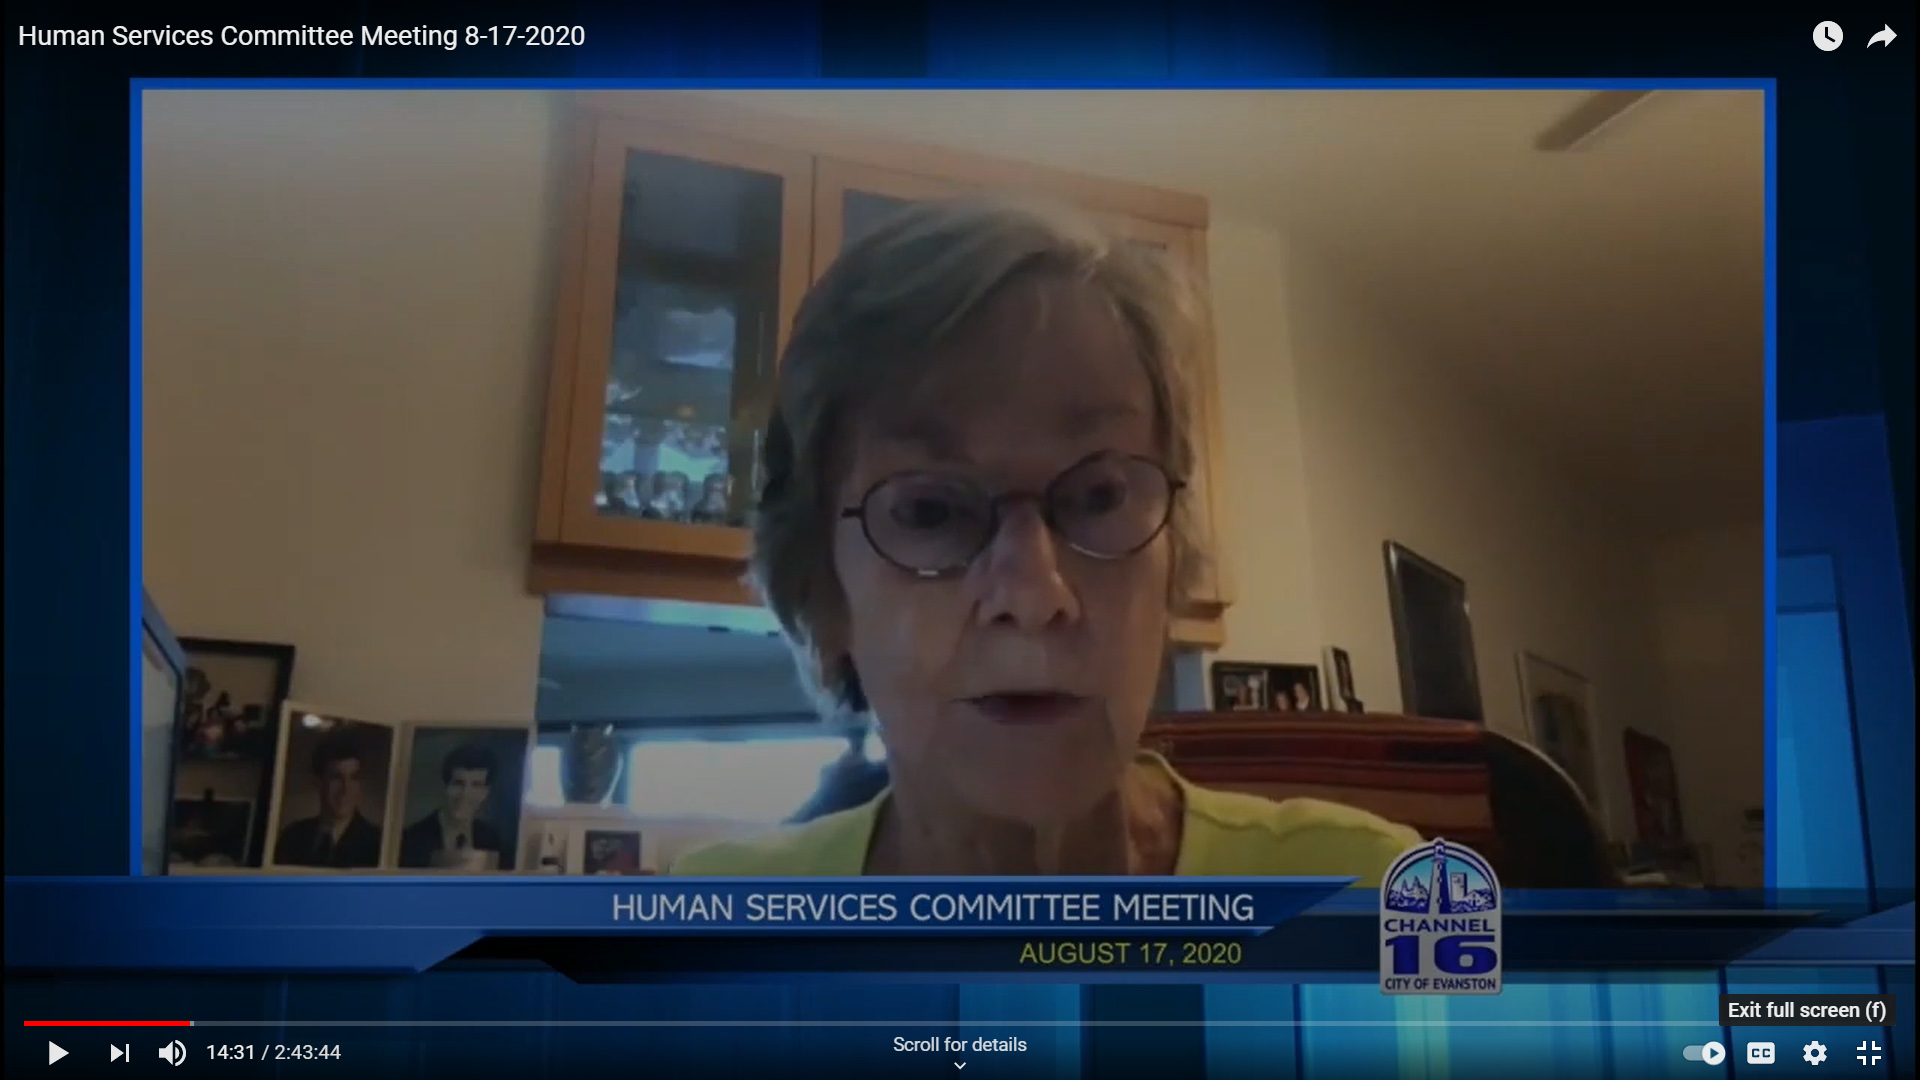 Alderman Revelle discussing Public Safety on the Human Services Committee